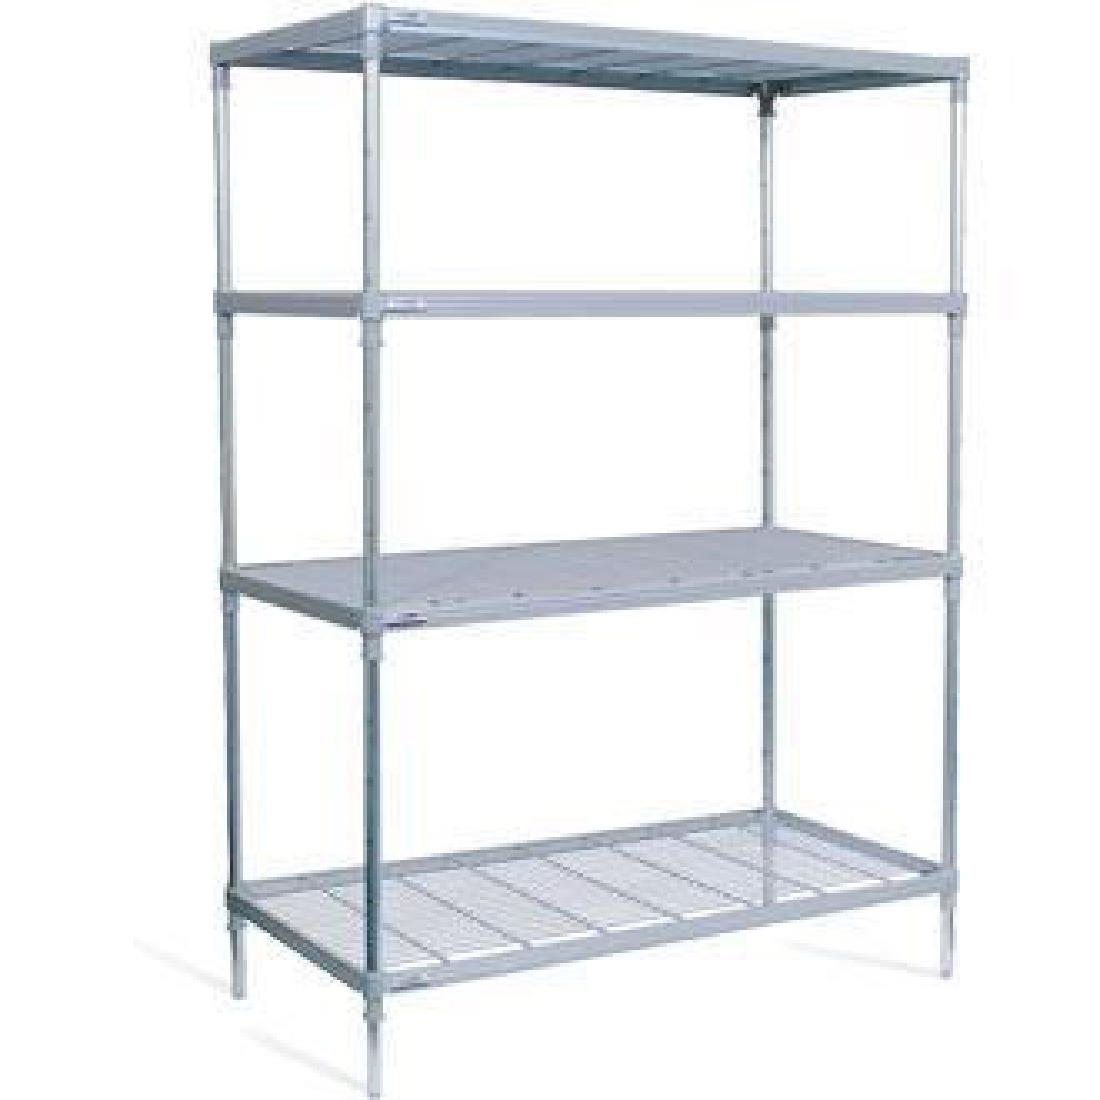 Image of Craven 4 Tier Nylon Coated Wire Shelving 1700x1475x391mm